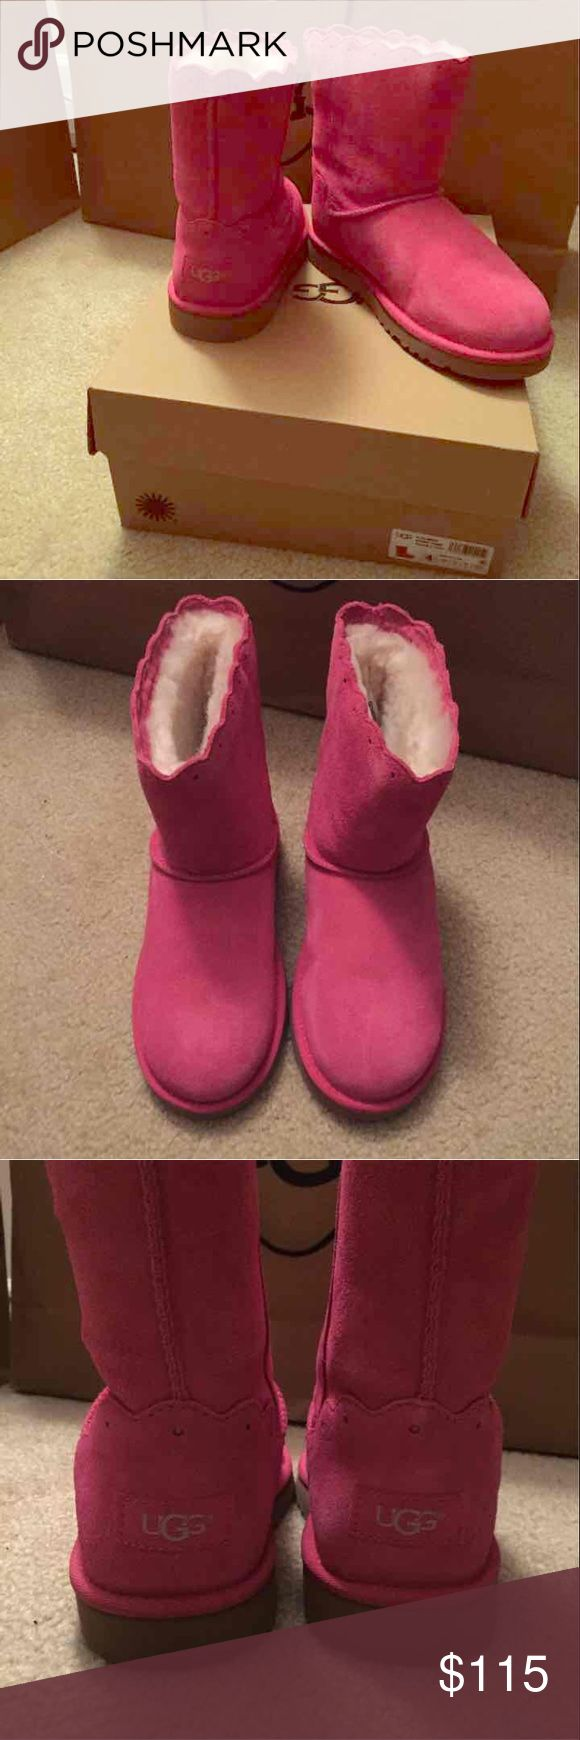 NWT Hot Pink Short Uggs (kid's/women's) New in Box Hot Pink Short Ugg Boots!  Super cute design and 100% Authentic!  I have one pair that is a kid's 4, which is equivalent to a women's 6!              And I have another pair that is a kid's 5, which is equivalent to a women's' 7! UGG Shoes Winter & Rain Boots